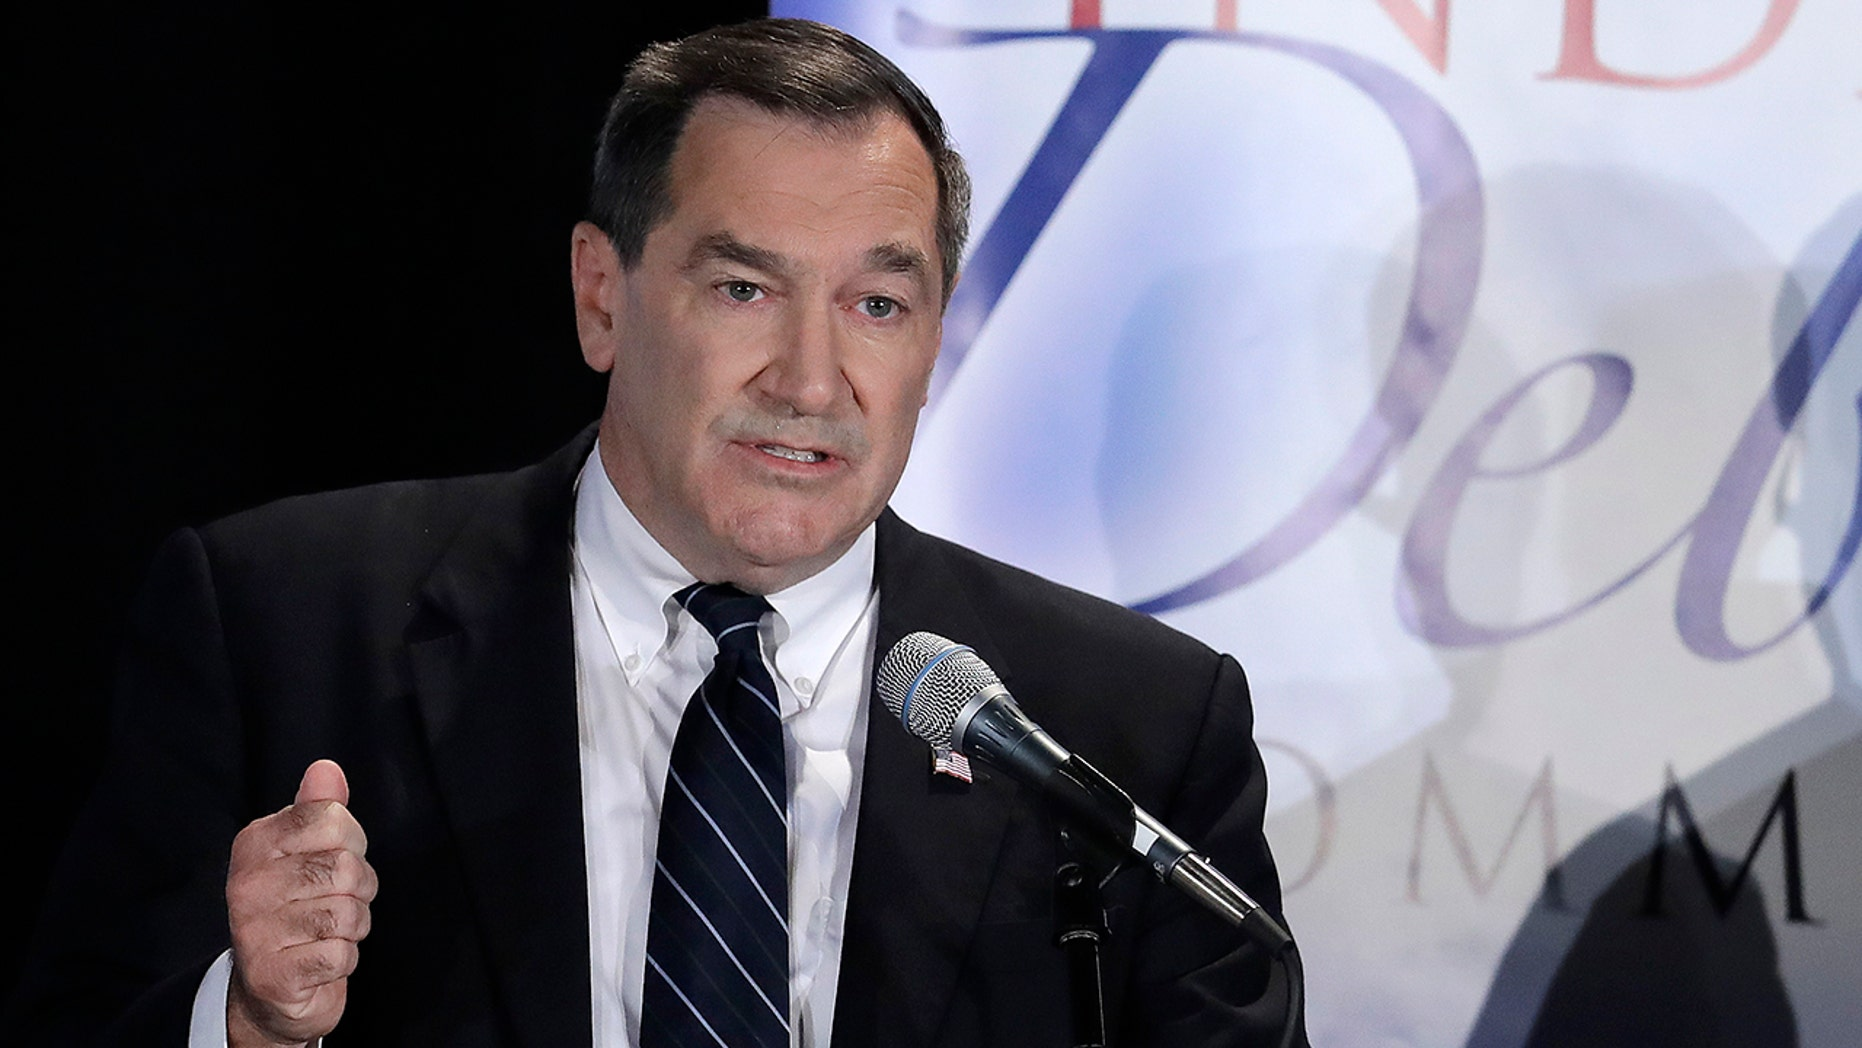 Democratic Sen. Joe Donnelly has often criticized his GOP opponent for importing products he sells from China. But it seems a Donnelly family-owned business does the same practice